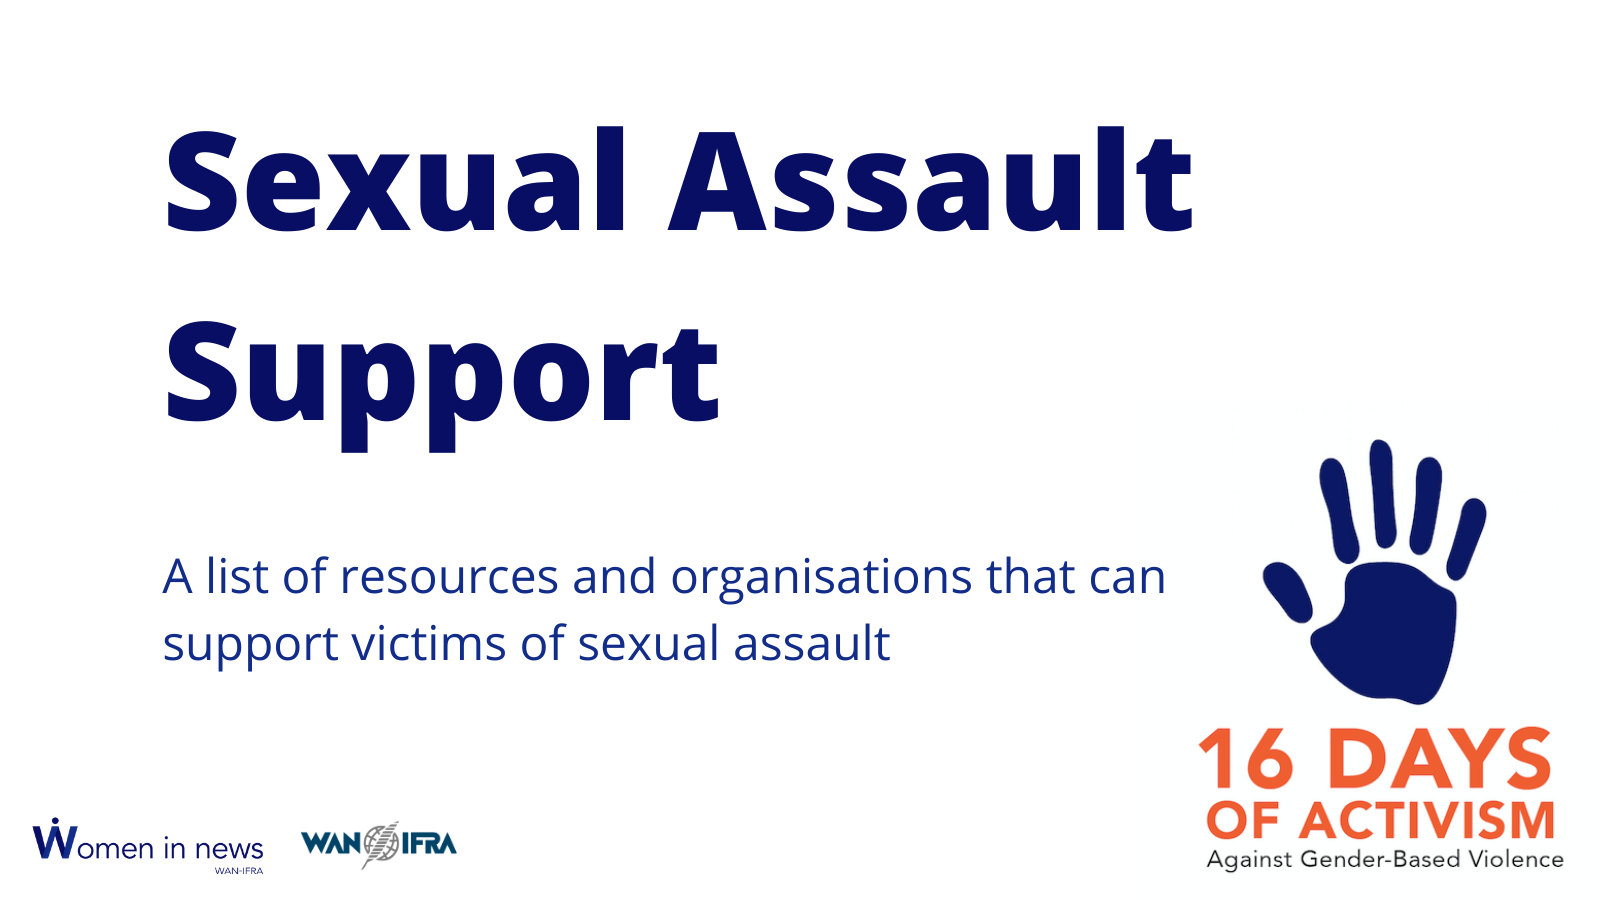 Sexual Assault Support